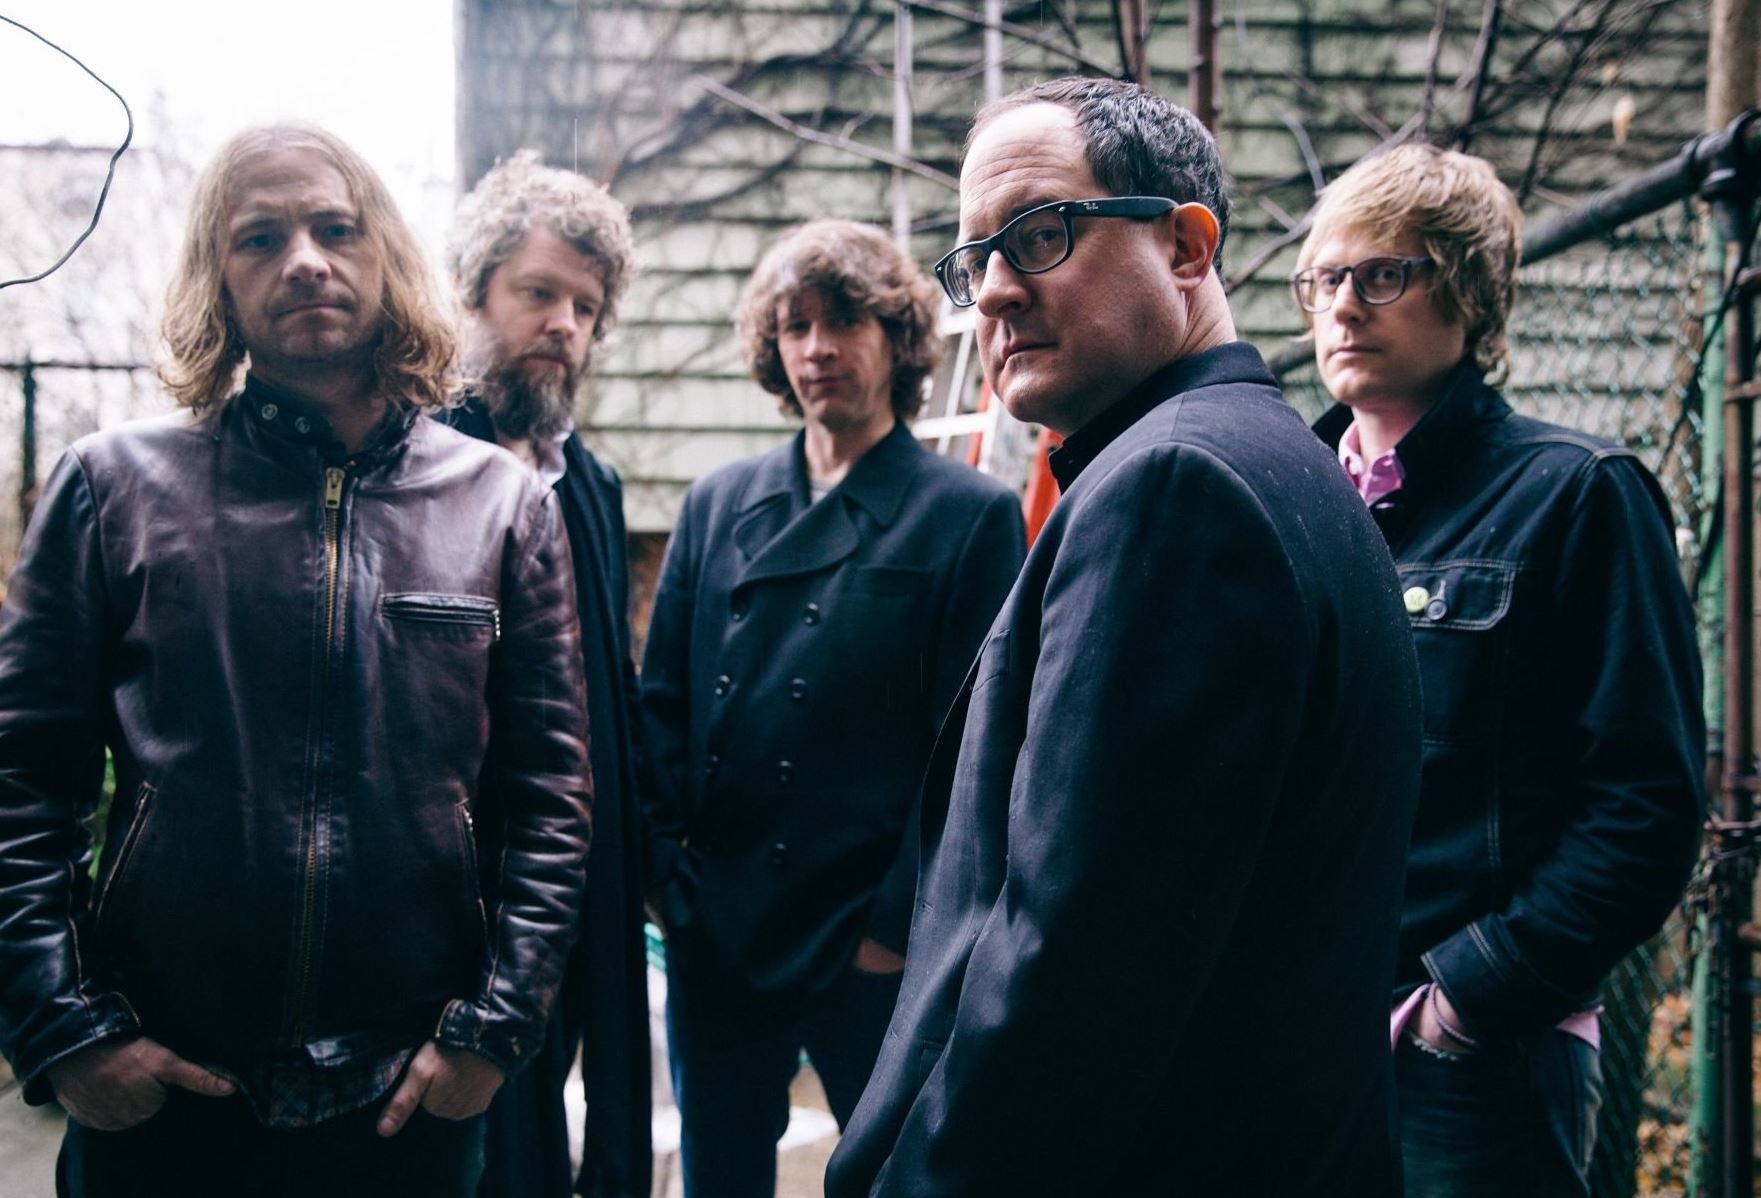 Tonight: The Hold Steady